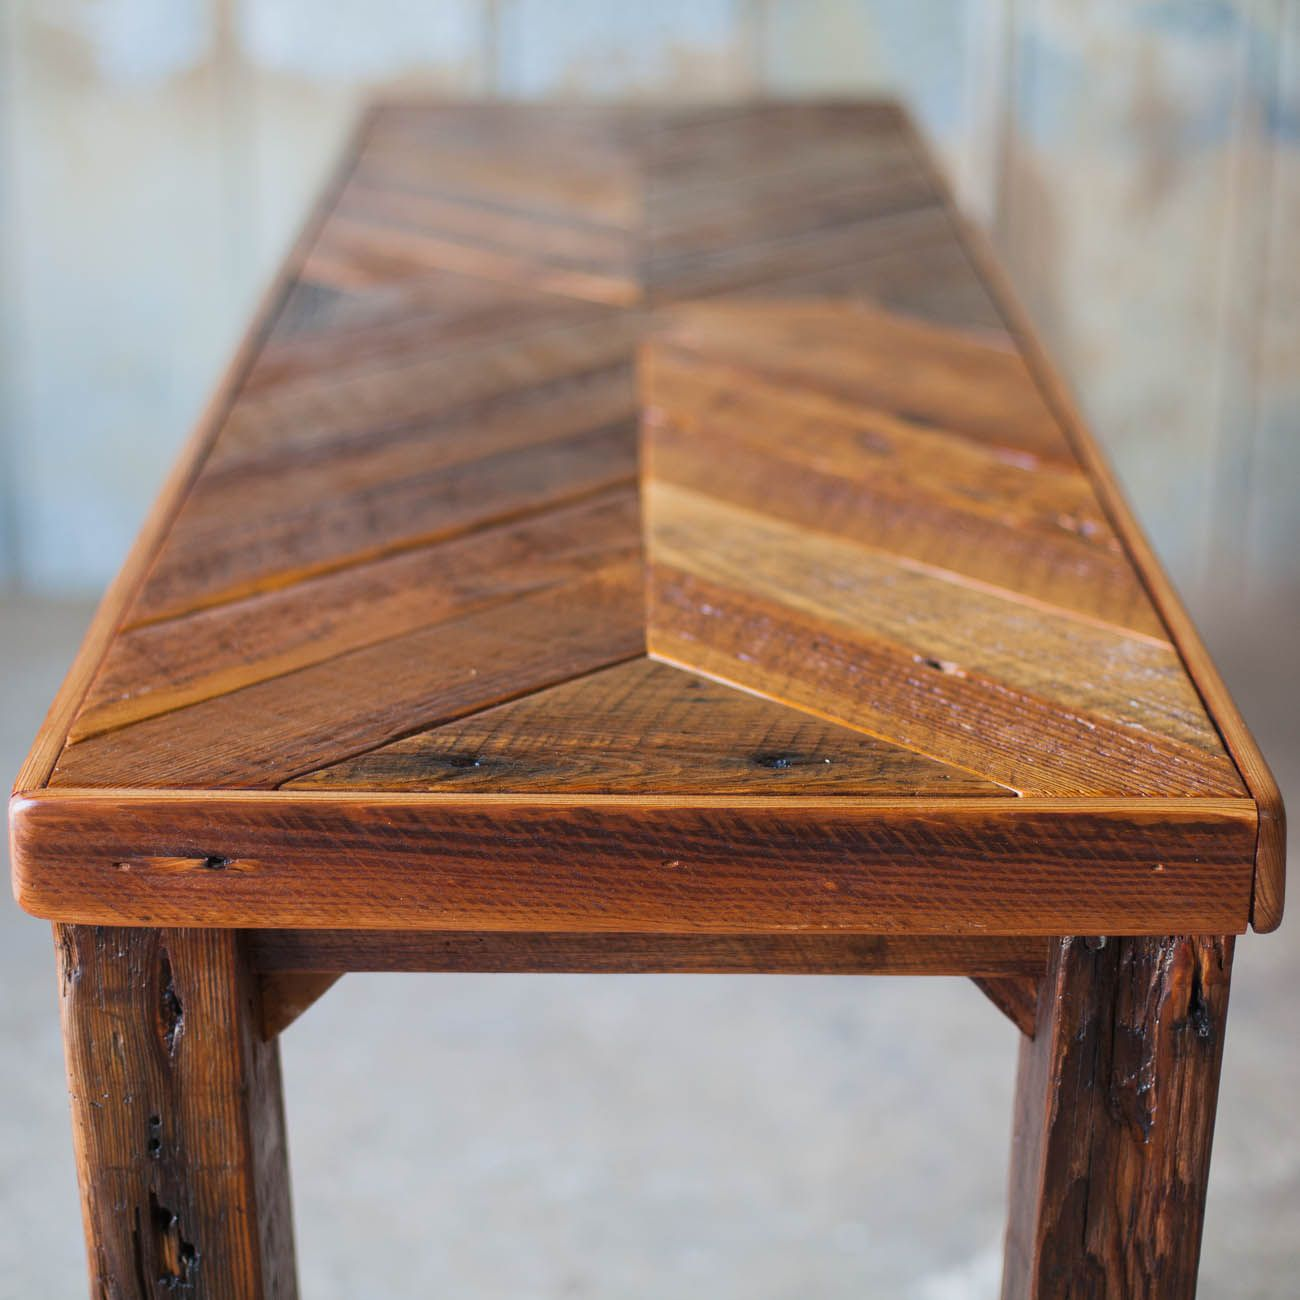 Superb Sofa Tables Wood Sofa Table Wood Sofa Coffee Table Ibusinesslaw Wood Chair Design Ideas Ibusinesslaworg